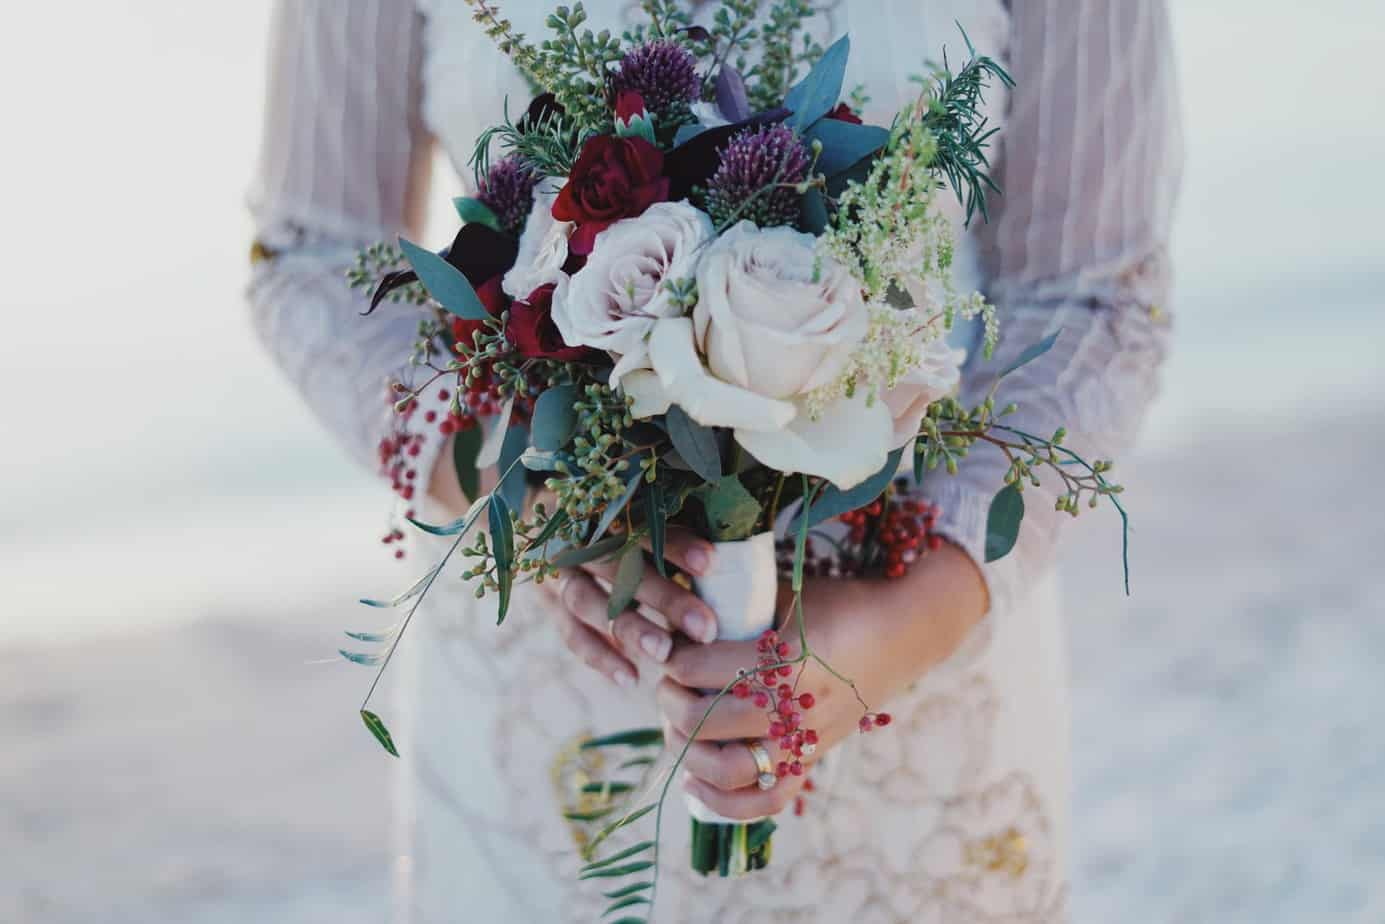 5 Substitute Of Bridal Bouquets In Wedding Which Can Make Your Marriage Budget Friendly In 2021.